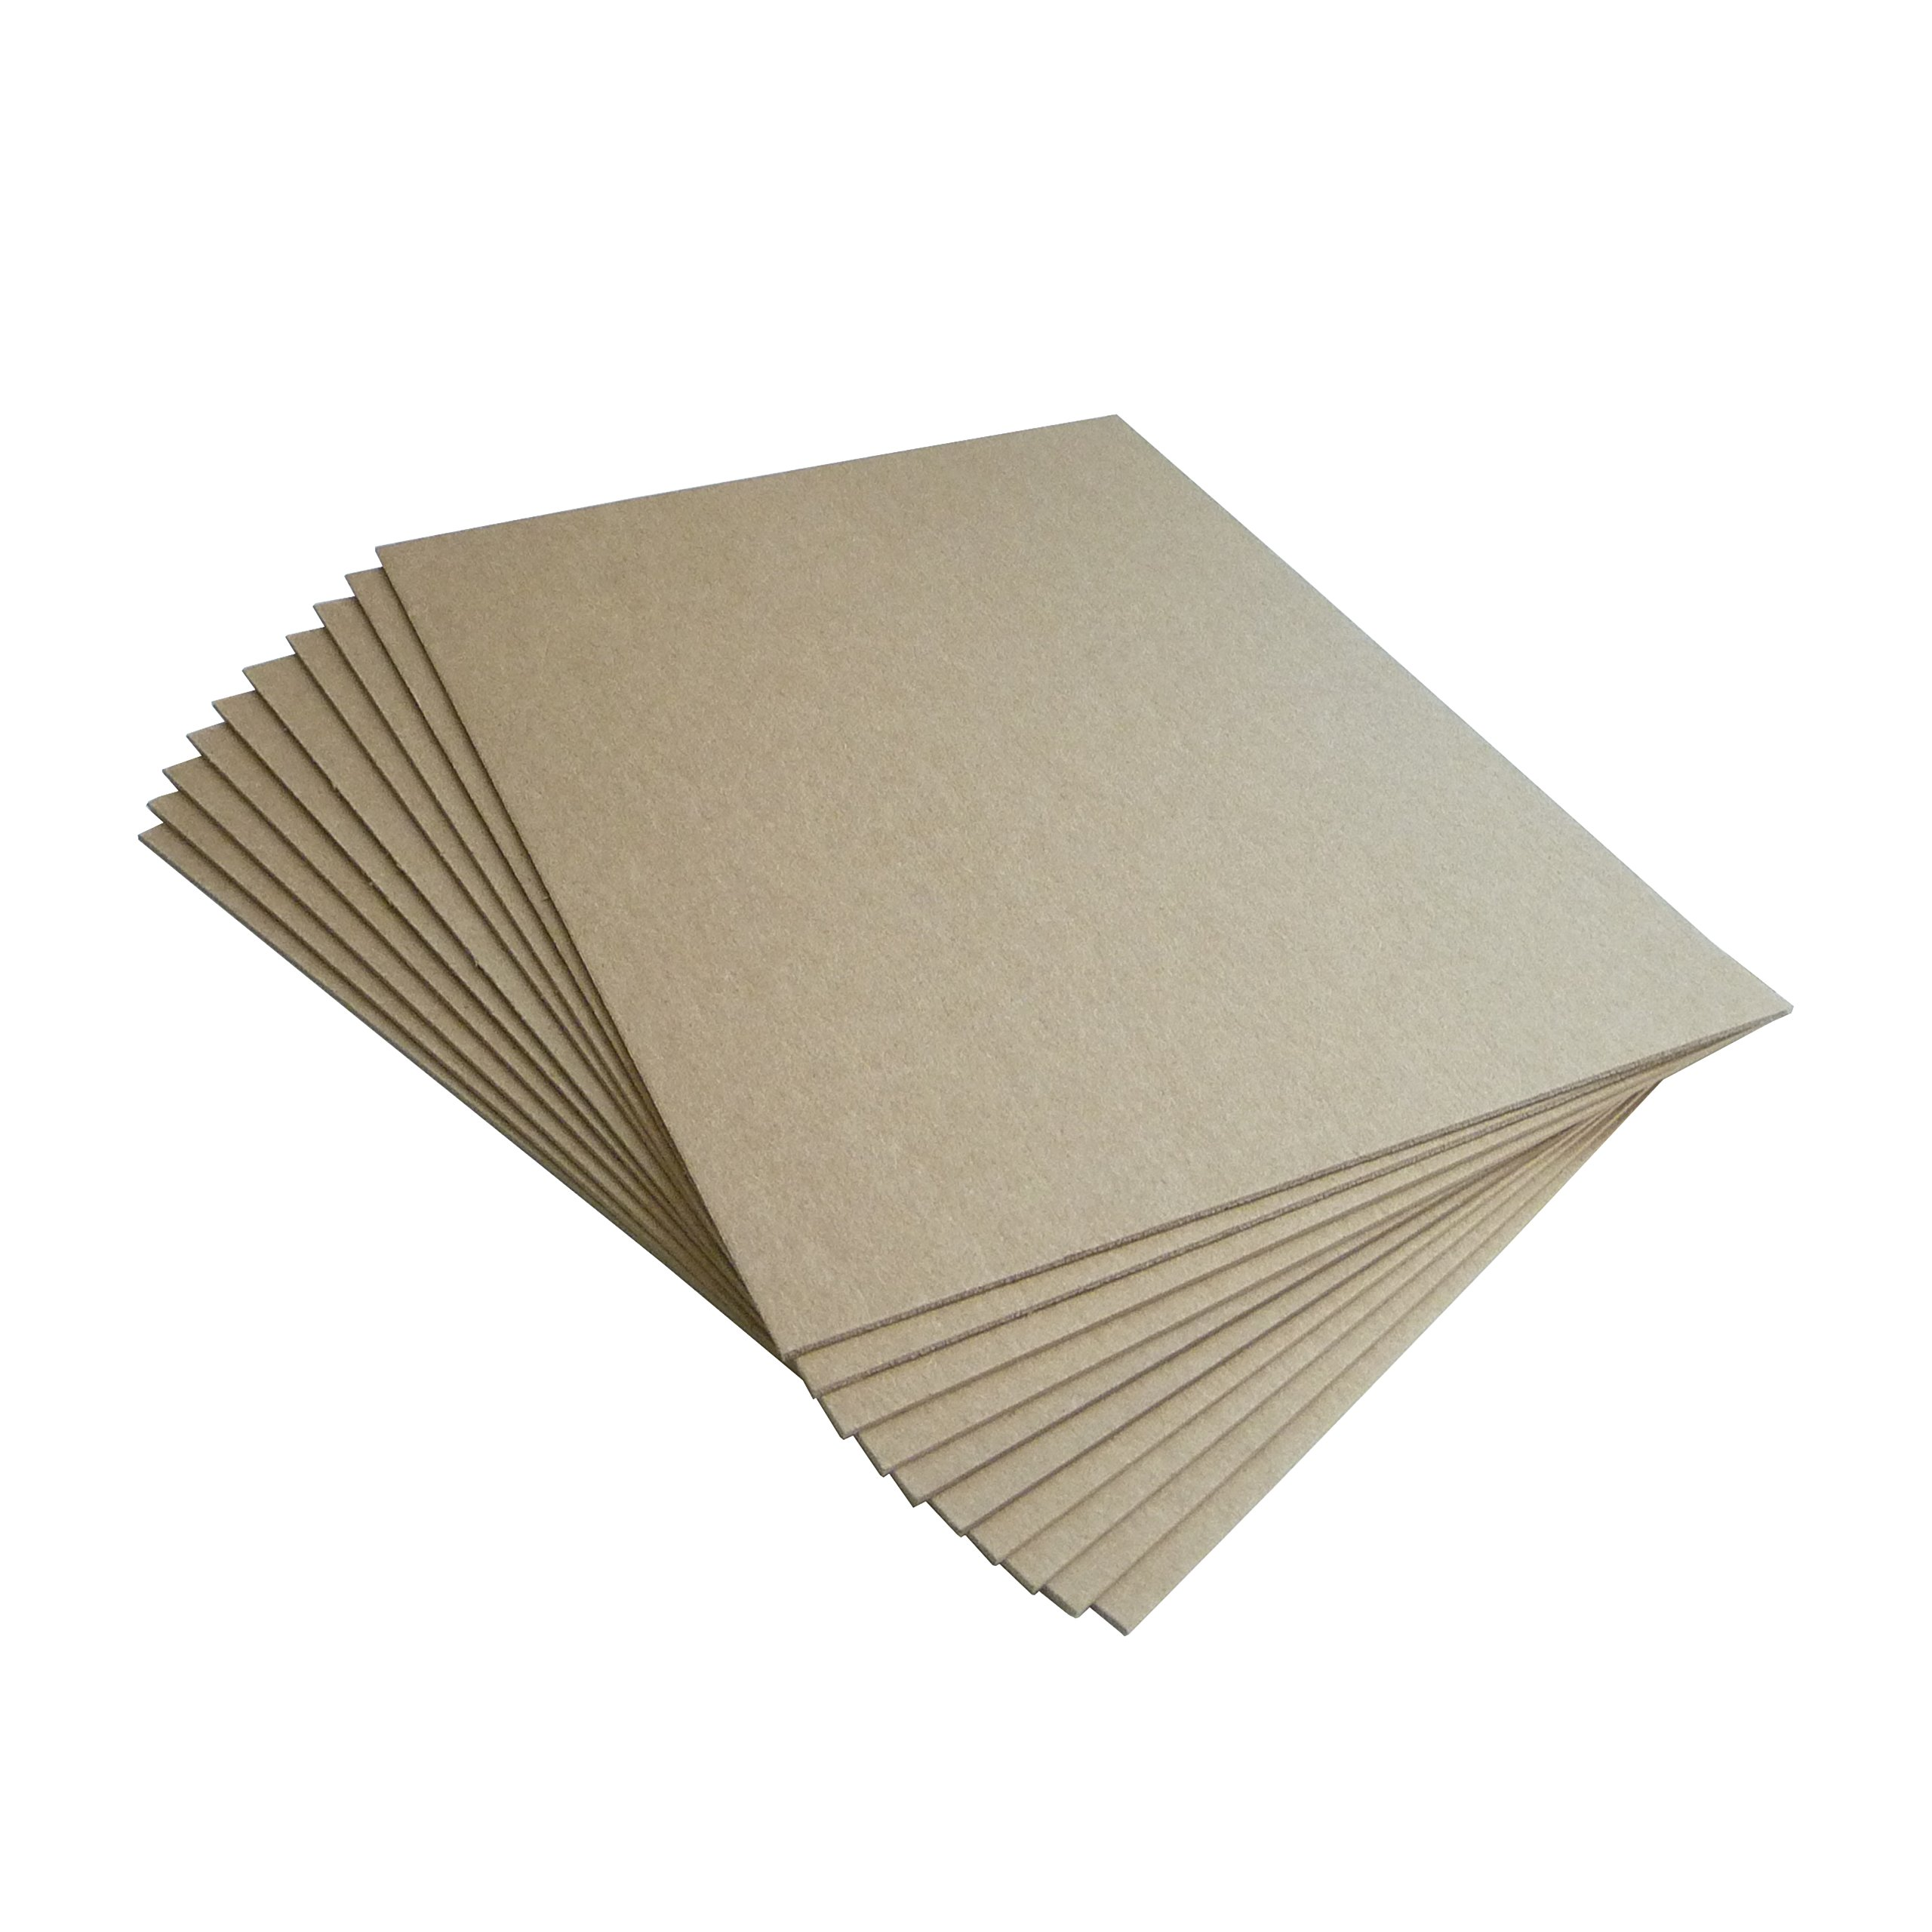 Chipboard Sheets 8.5 x 11 Inch | Medium Heavy Weight 50 Point | Pack of 50 Chipboards with Other Quantities Available – Made in USA – Brown Kraft Chip Board Pads by Things Improved